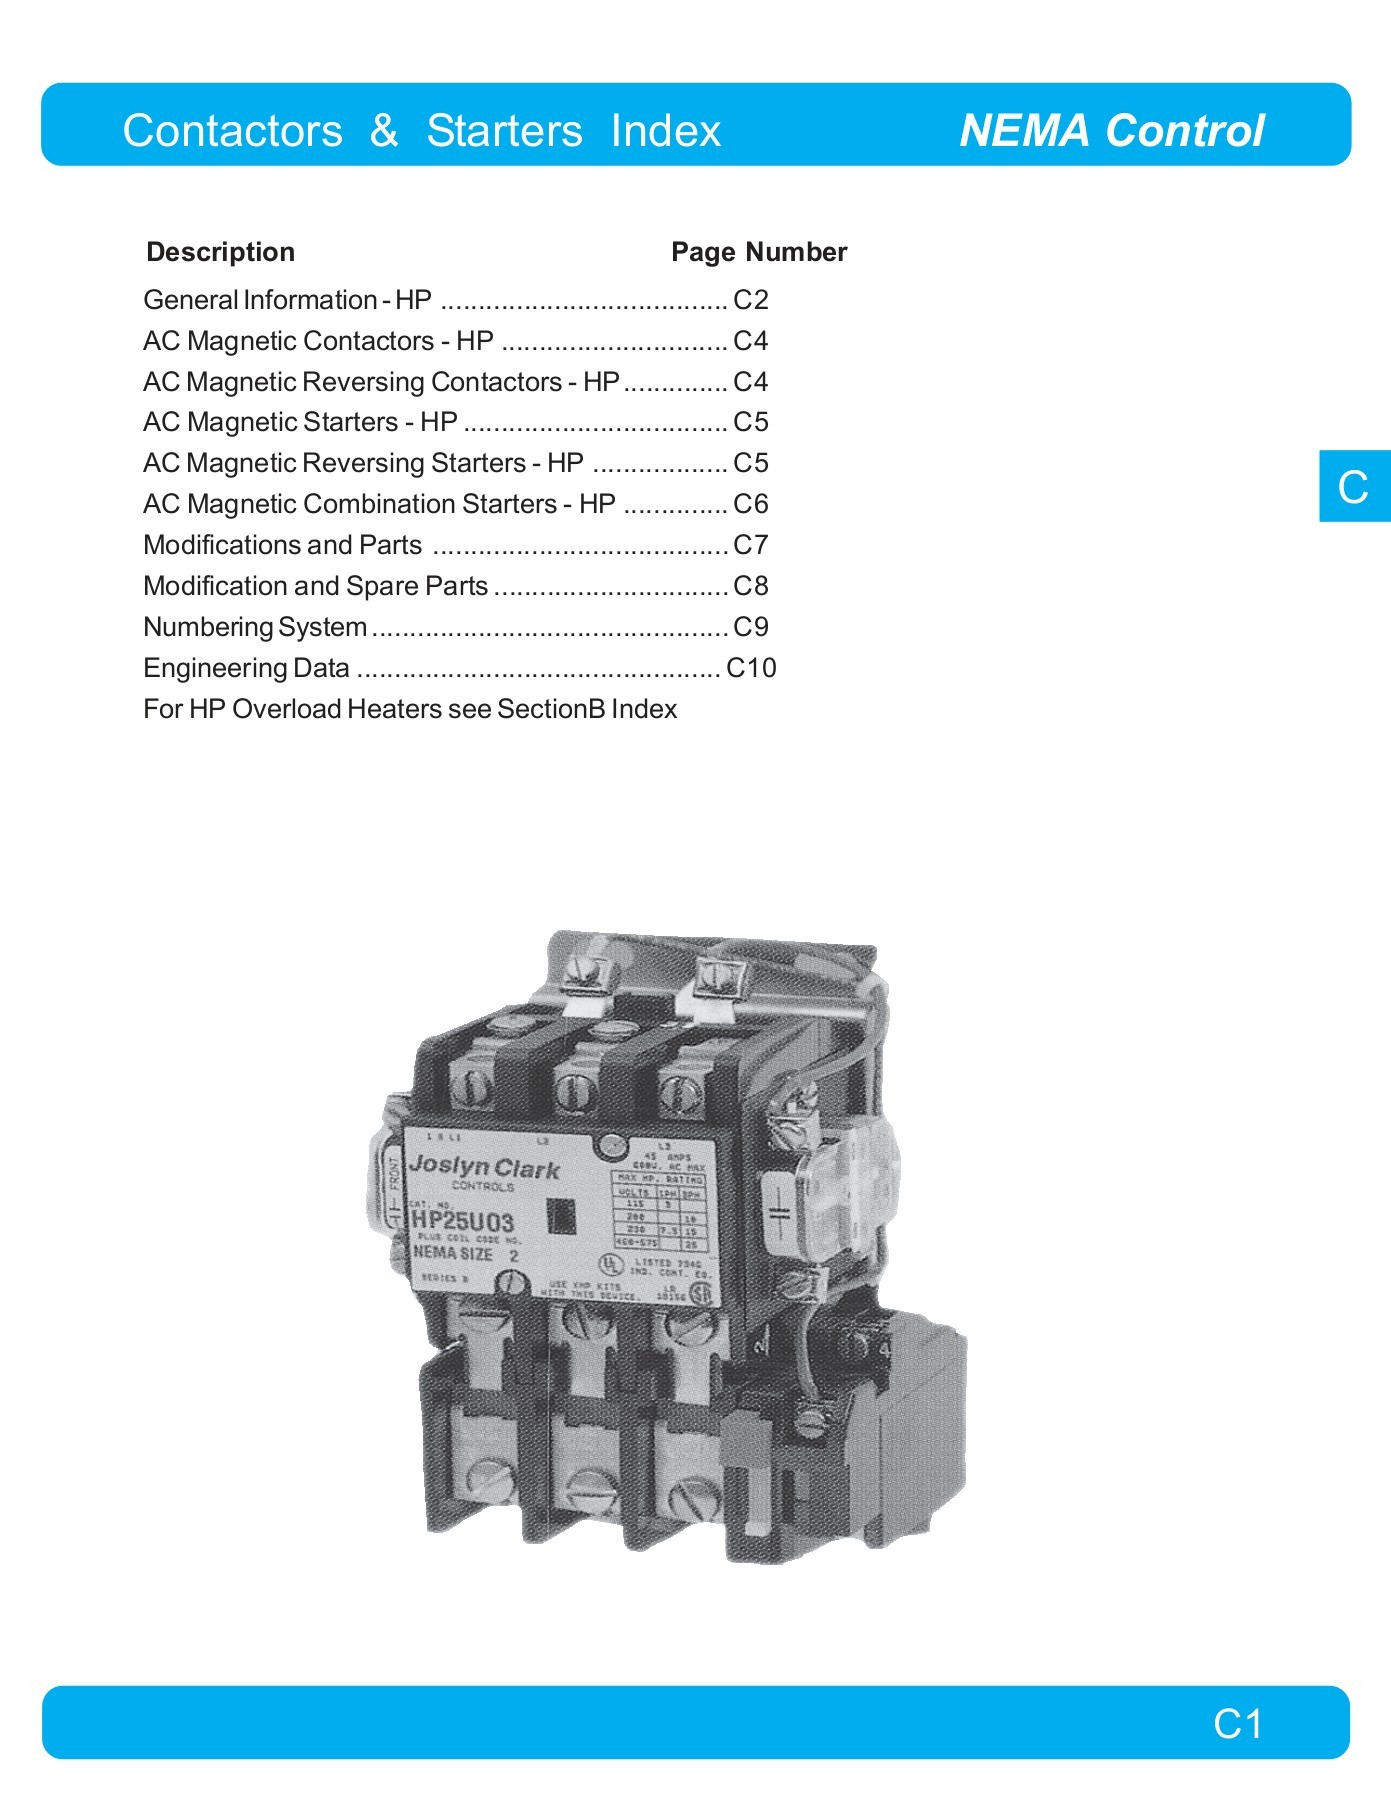 hight resolution of contactors starters index nema control pages 1 14 text version fliphtml5